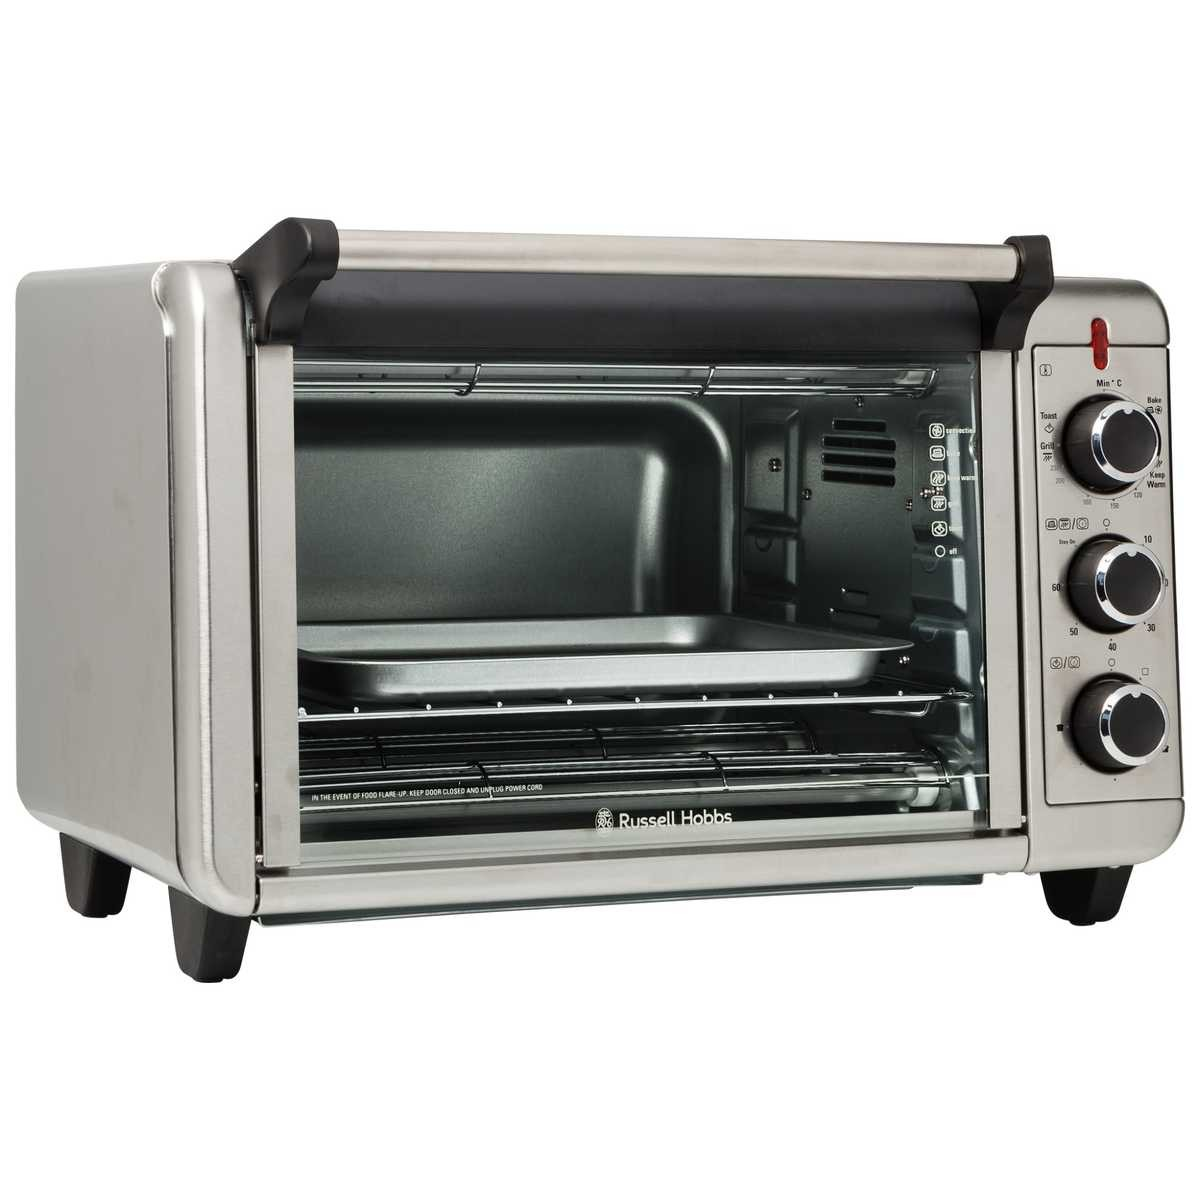 Convention Oven Russell Hobbs Family Convection Toaster Oven Rhtov20 Big W